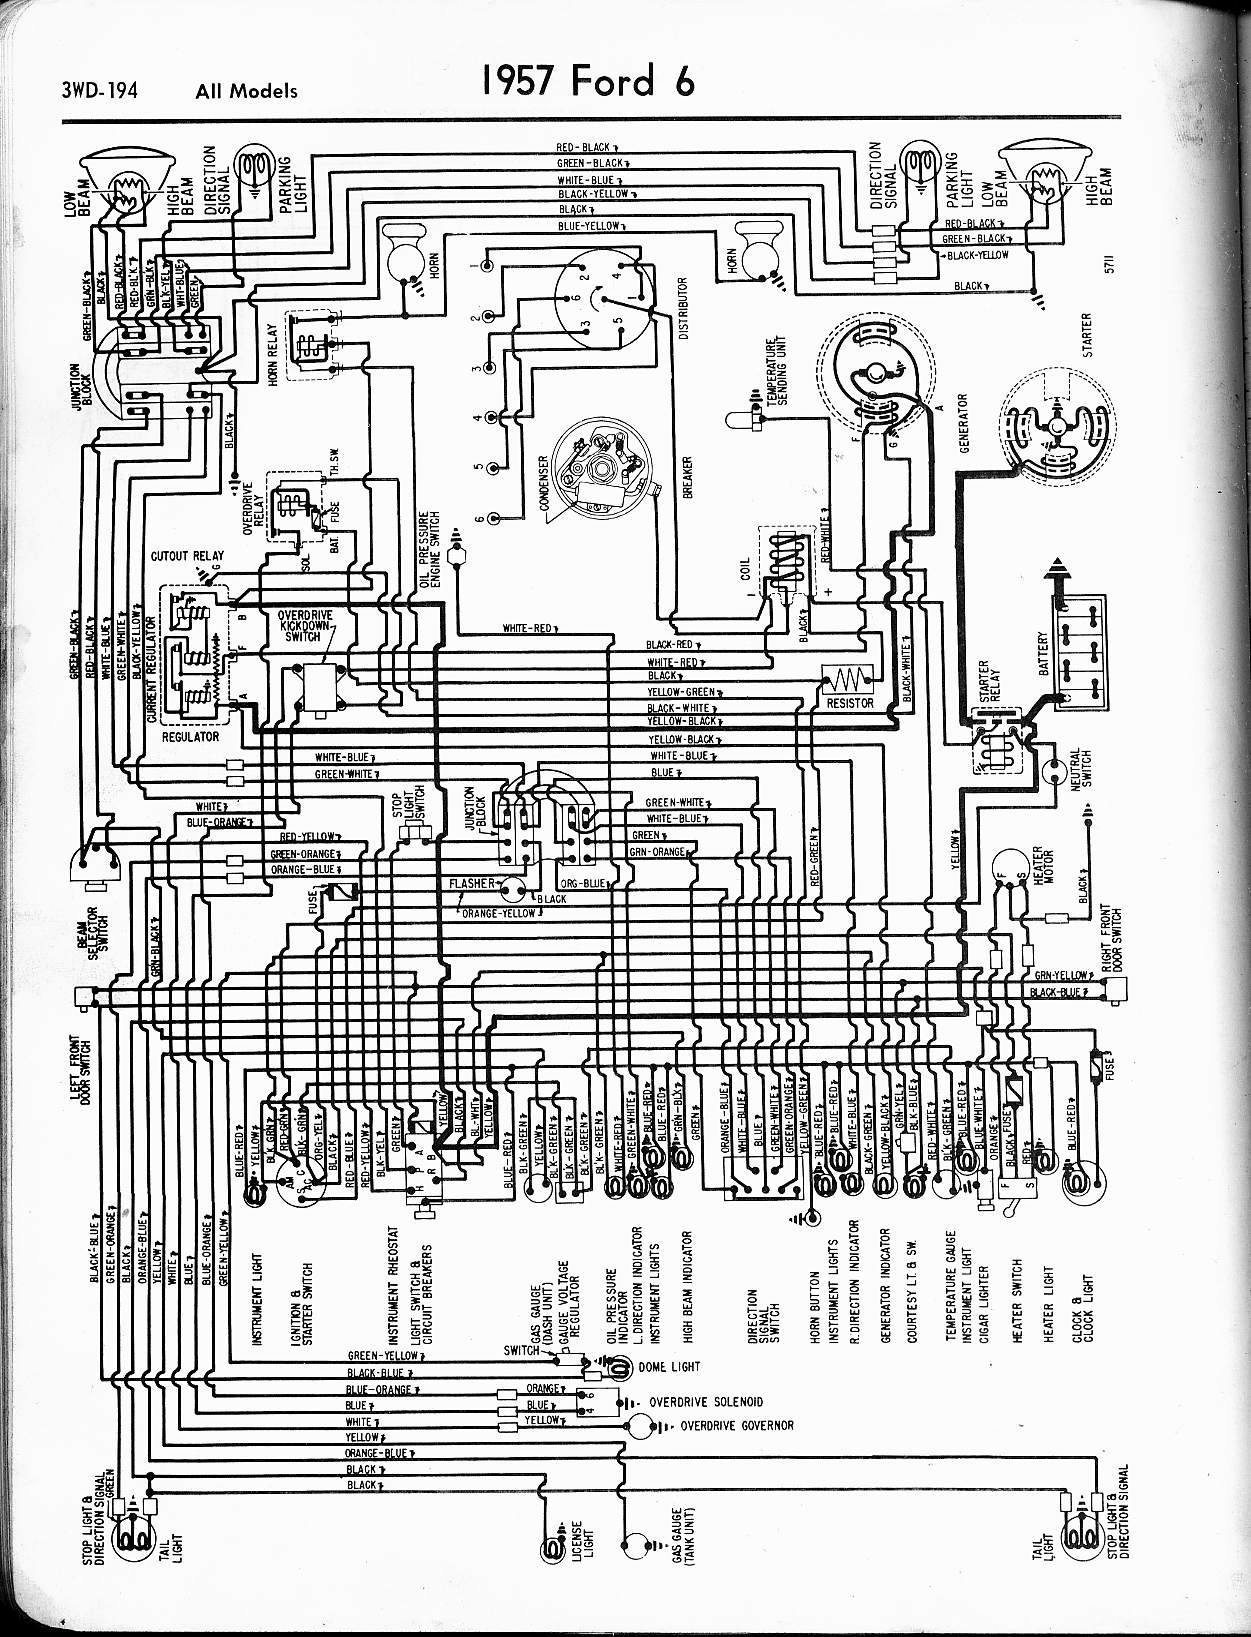 57_ford_wiring ford diagrams 2006 ford f250 wiring schematic at edmiracle.co